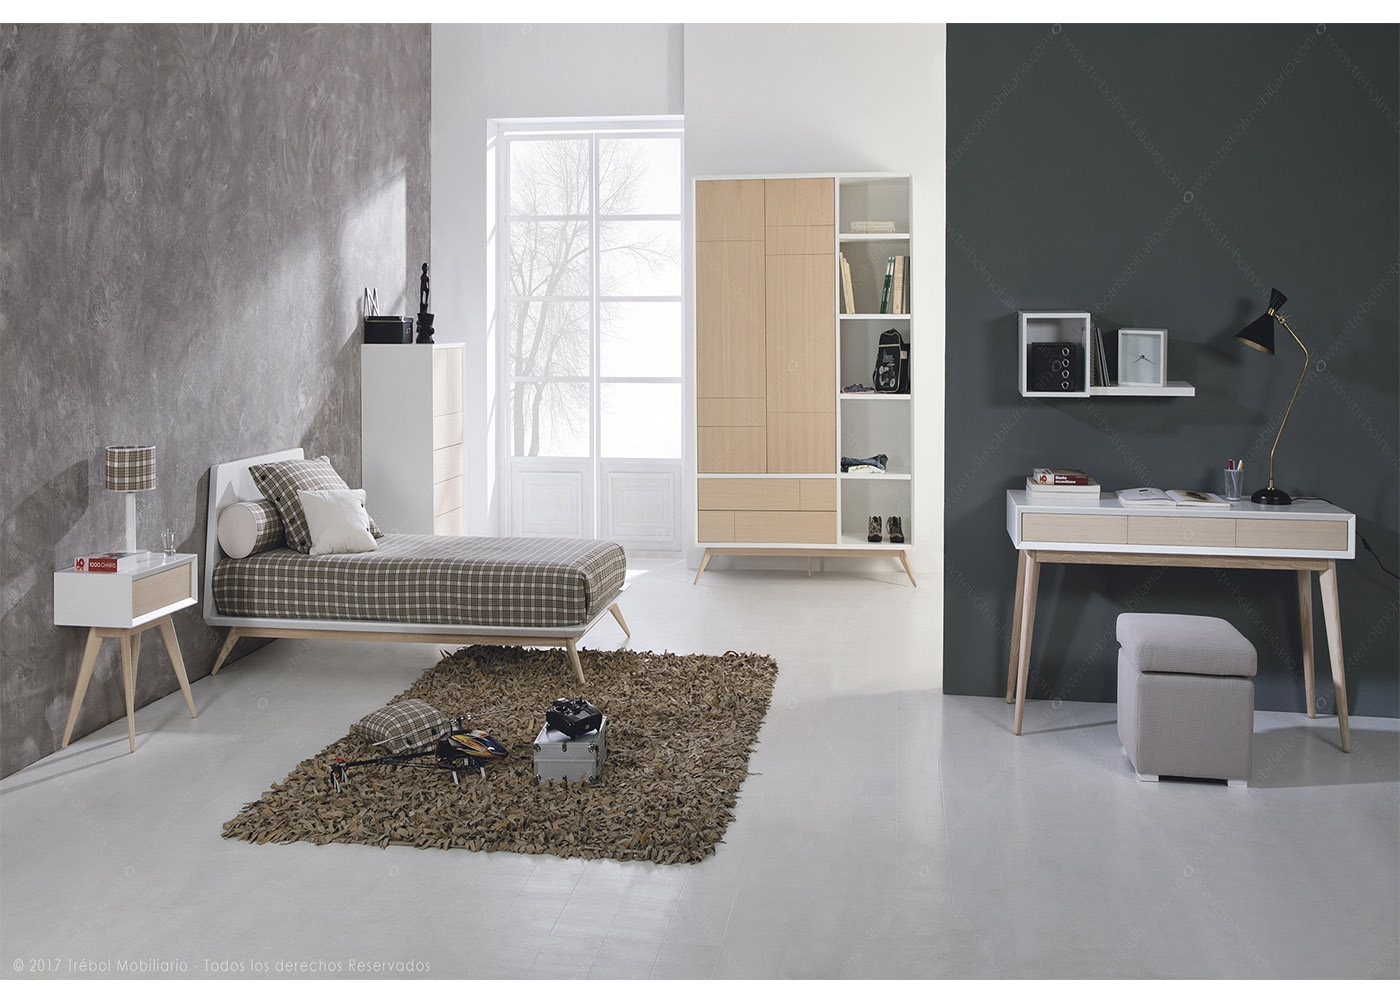 Chambre ado au design scandinave haute qualit chez ksl living for Chambre ado design